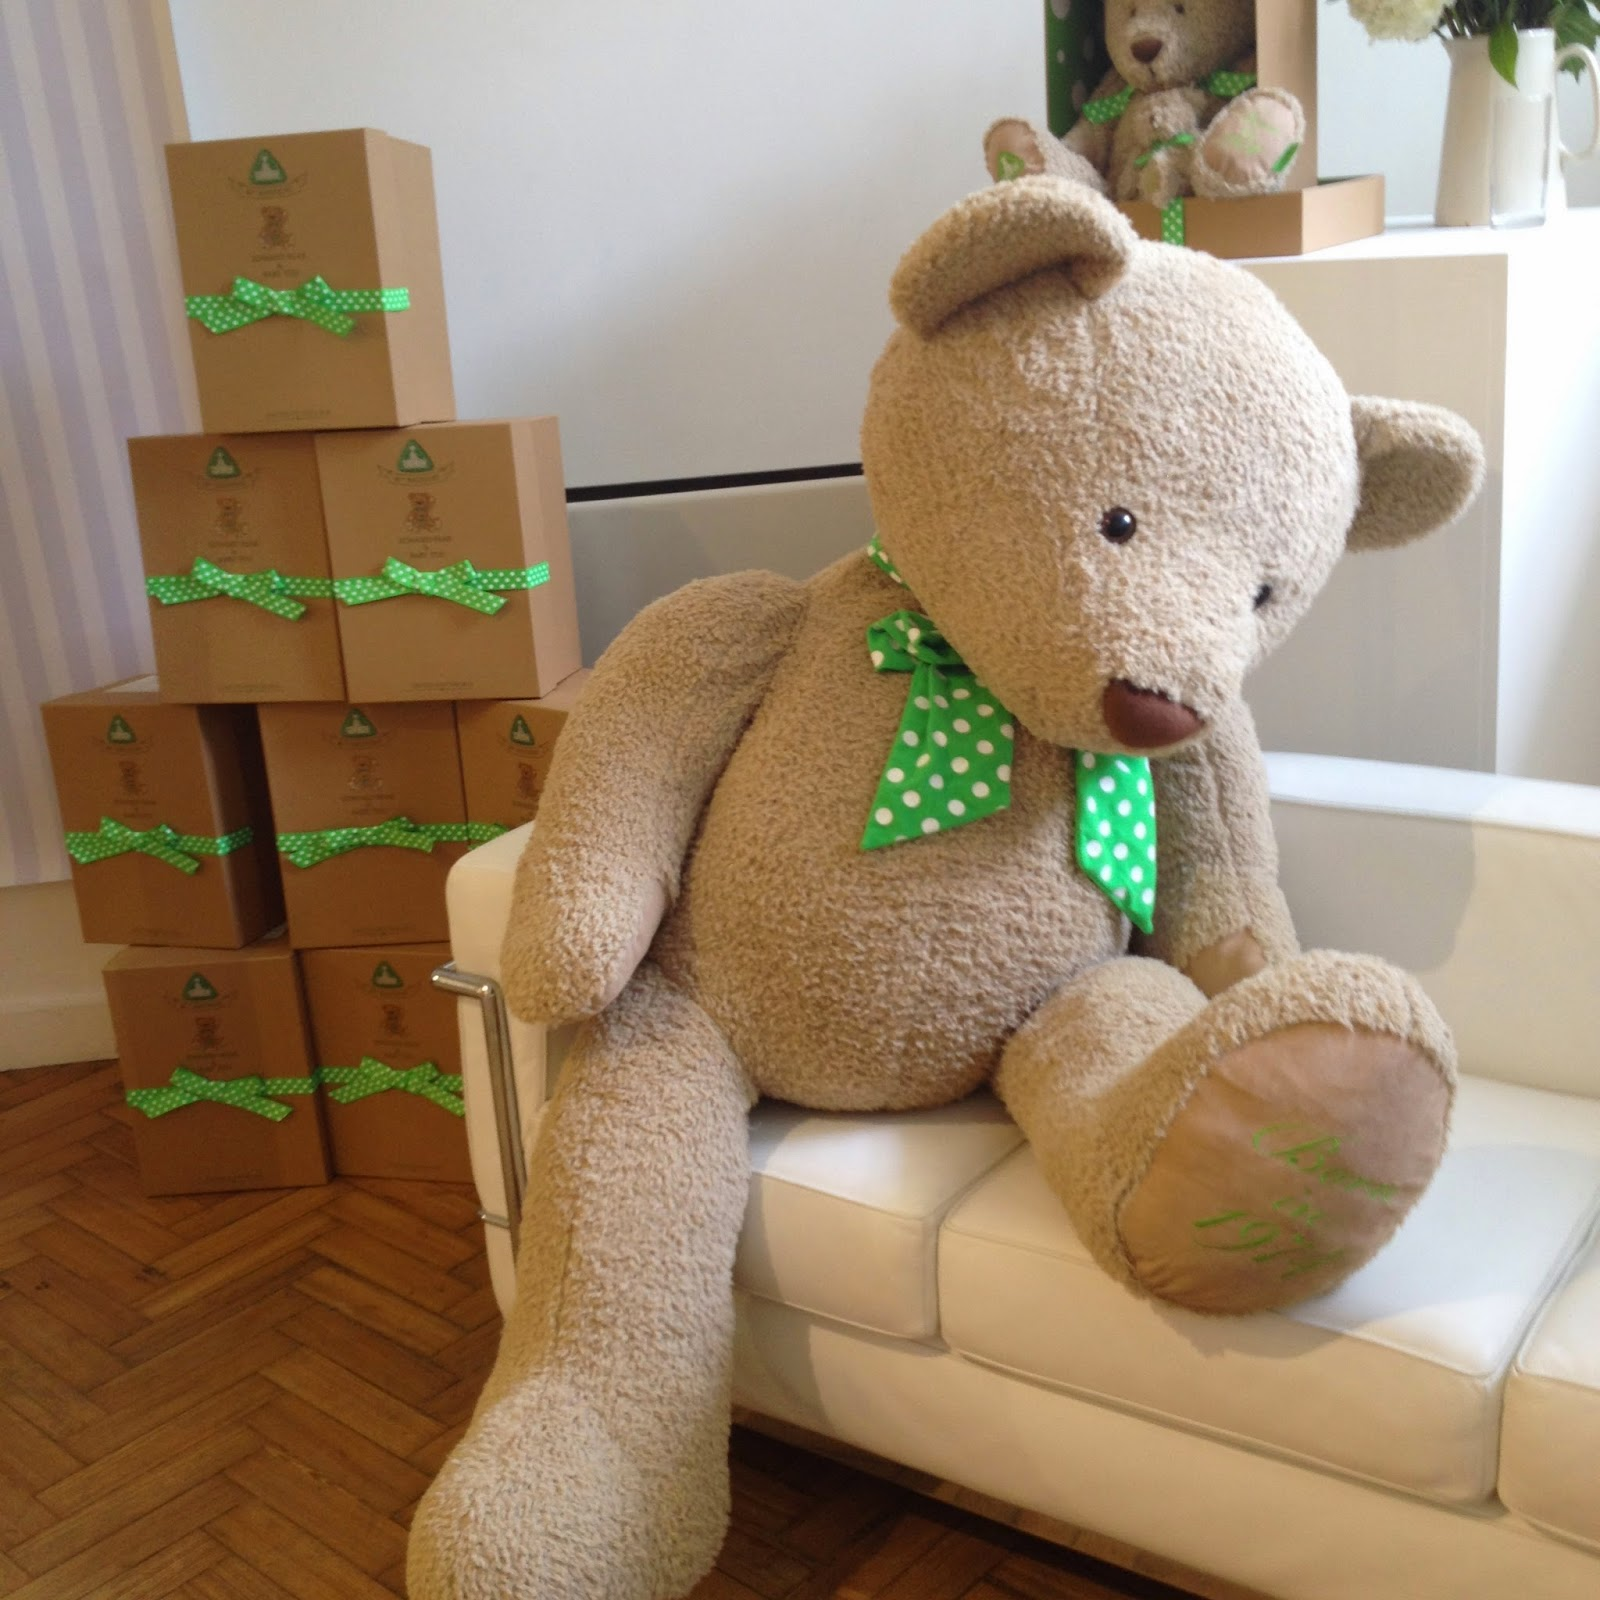 Happy 40th Birthday to ELC and Limited Edition Teddy *GIVEAWAY* | early learning cent elf | mothercare | giveaway | competition | birthday | 40th birthday | teddy | 300 limited edition teddy | mamasVIB | competition | birthday gift | born in 1974 | born in 2014 | 40th birthday | babies gift | teddies | edward ted | small teddy | gifts | birthday presents | ELC